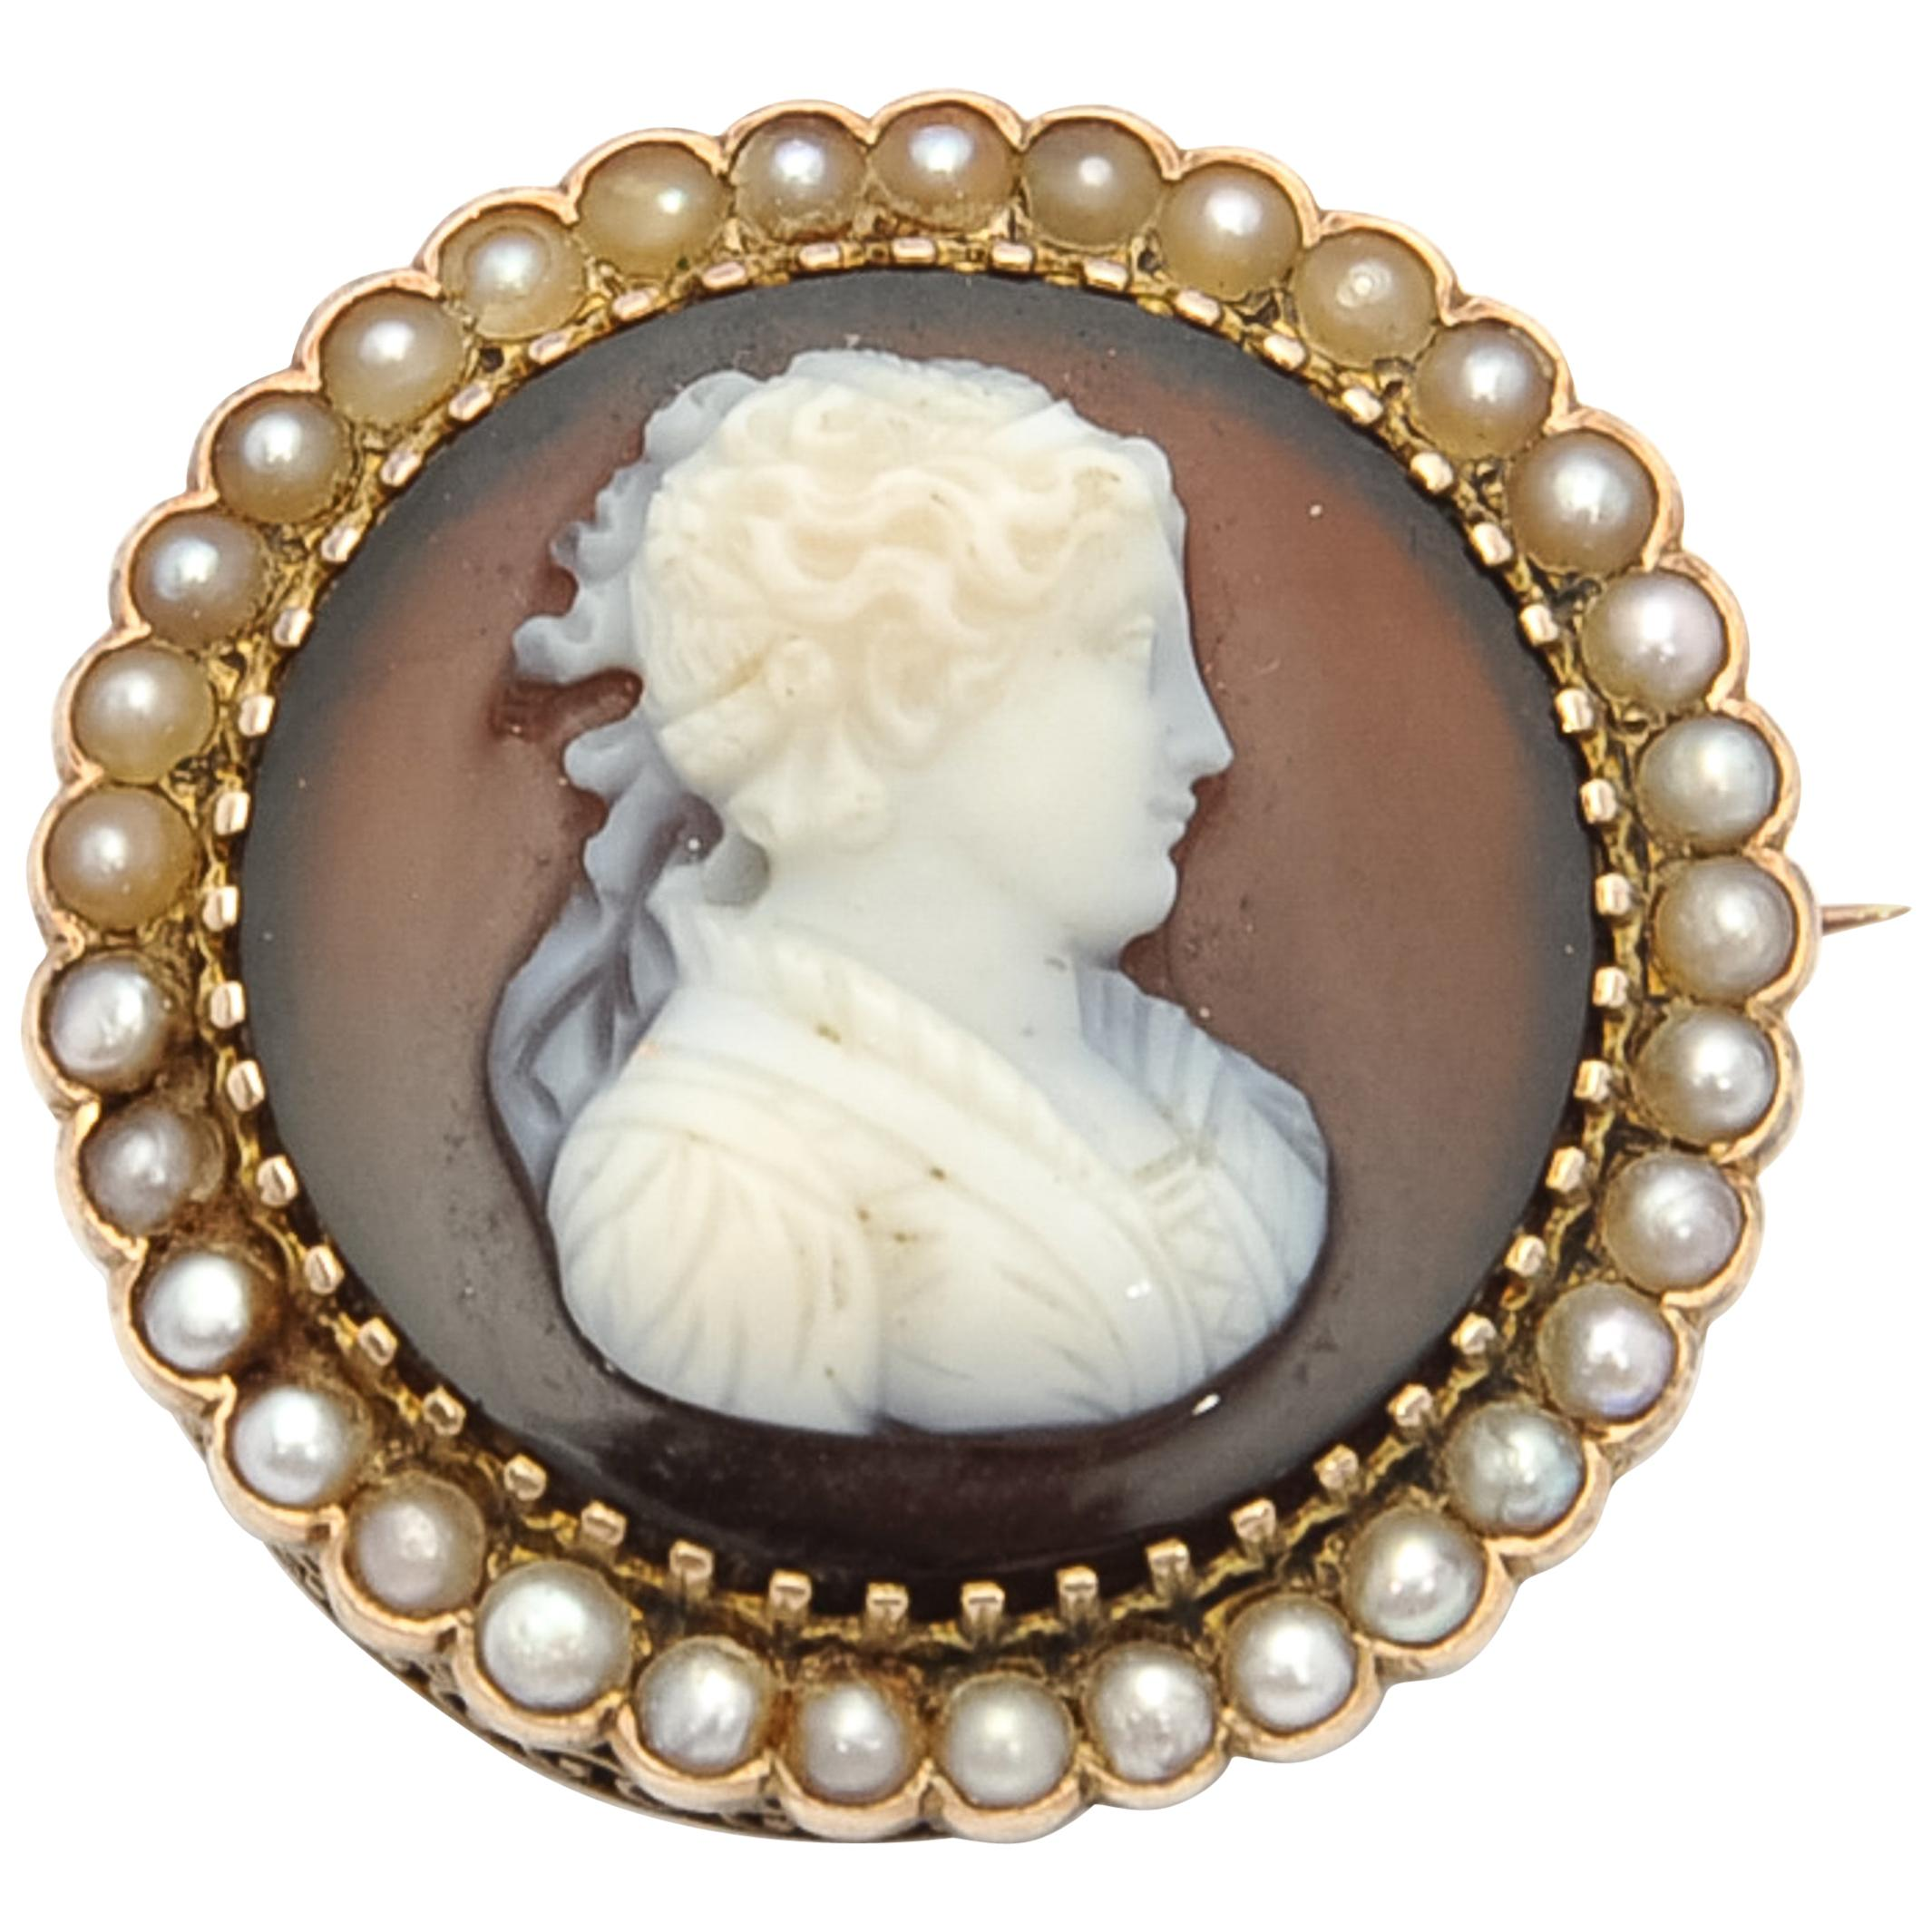 5db75193f4c6b 19th Century Brooches - 1,236 For Sale at 1stdibs